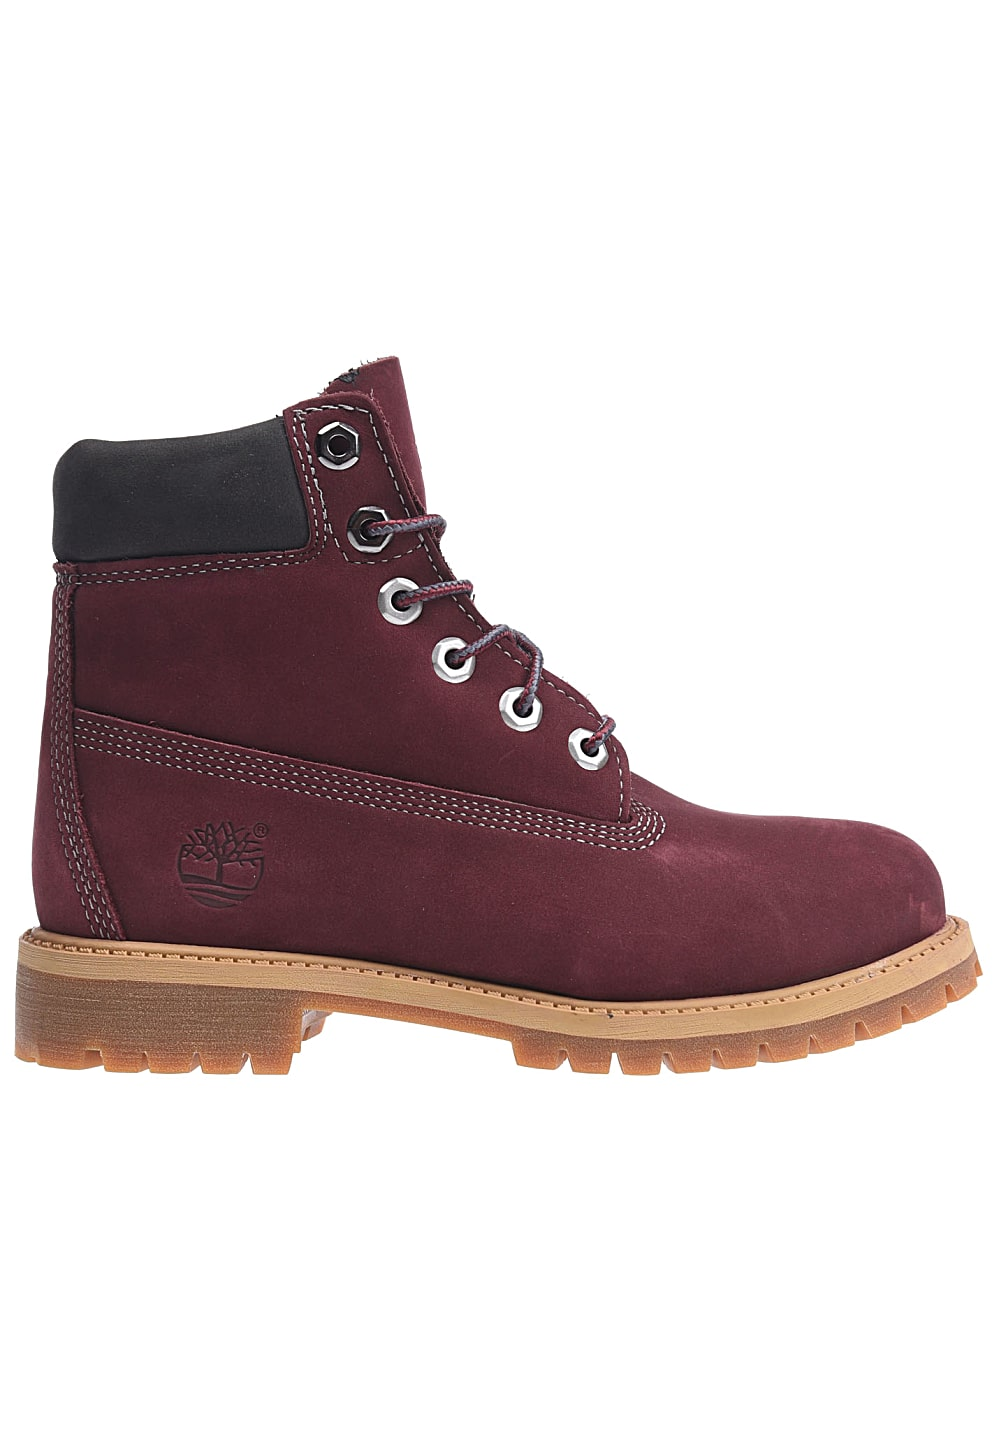 Timberland 6 inch Premium Stiefel Rot